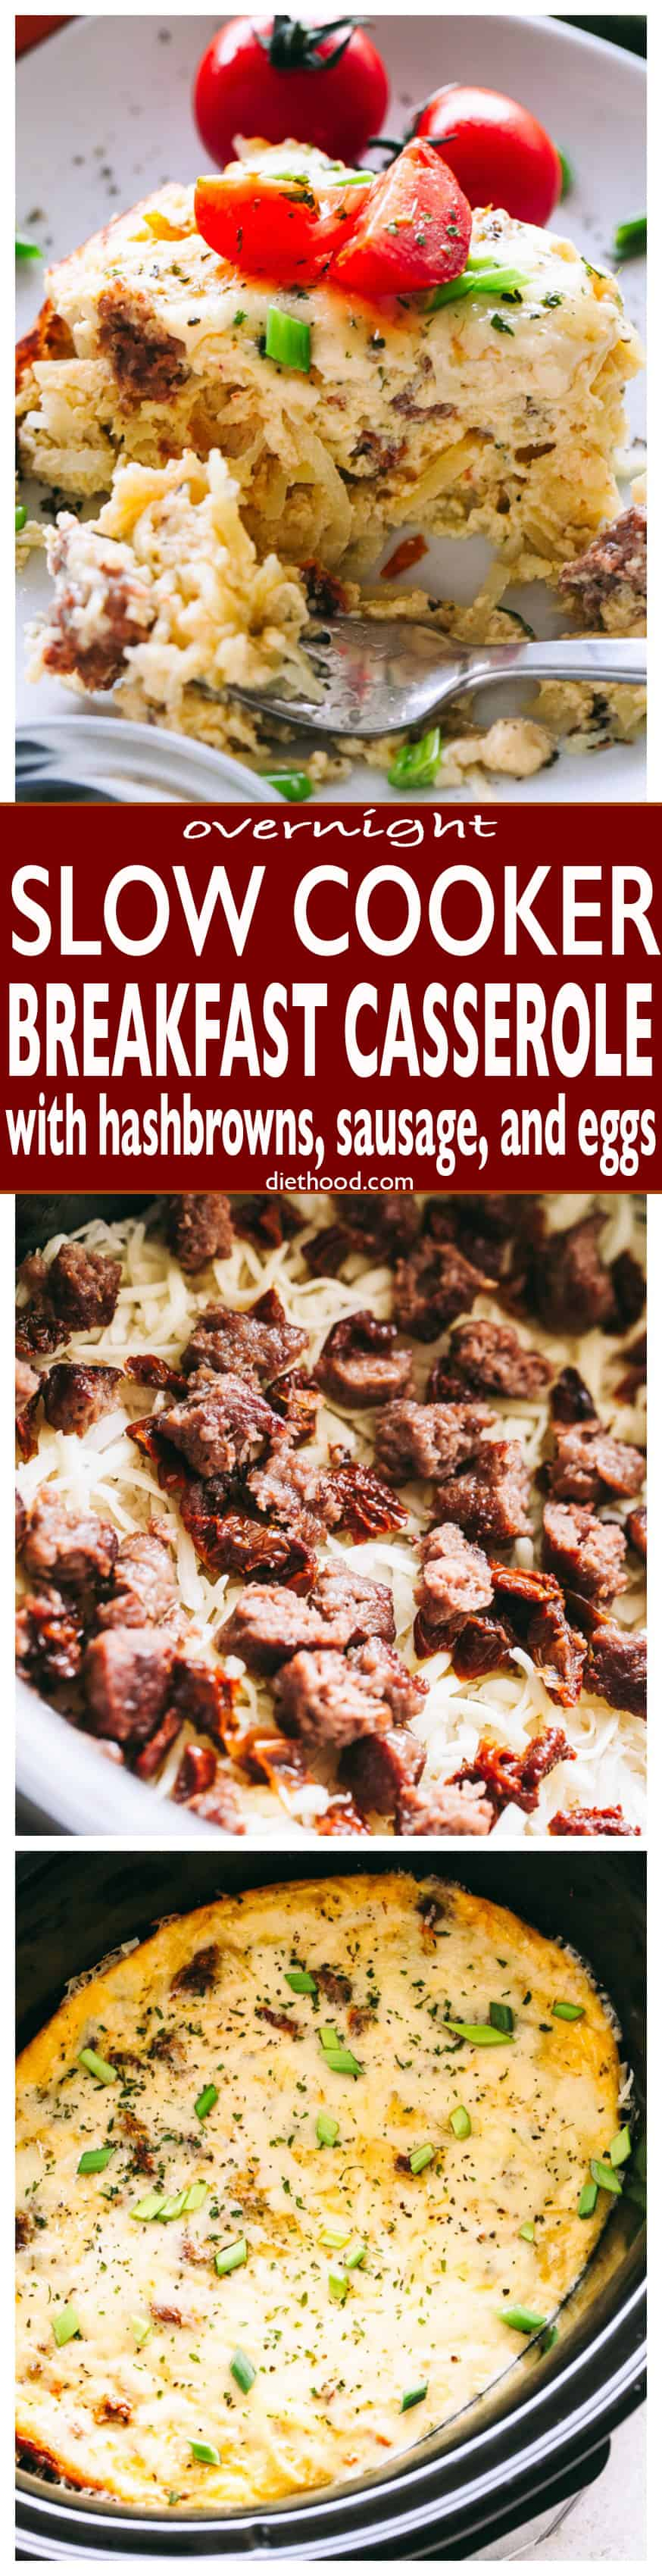 Overnight Slow Cooker Breakfast Casserole - Set the slow cooker overnight and wake up to this amazing #breakfast casserole loaded with hashbrowns, cheese, sausage, and eggs. Perfect for #Christmas or #Holiday mornings, and when hosting a big crowd. #slow_cooker #crock_pot